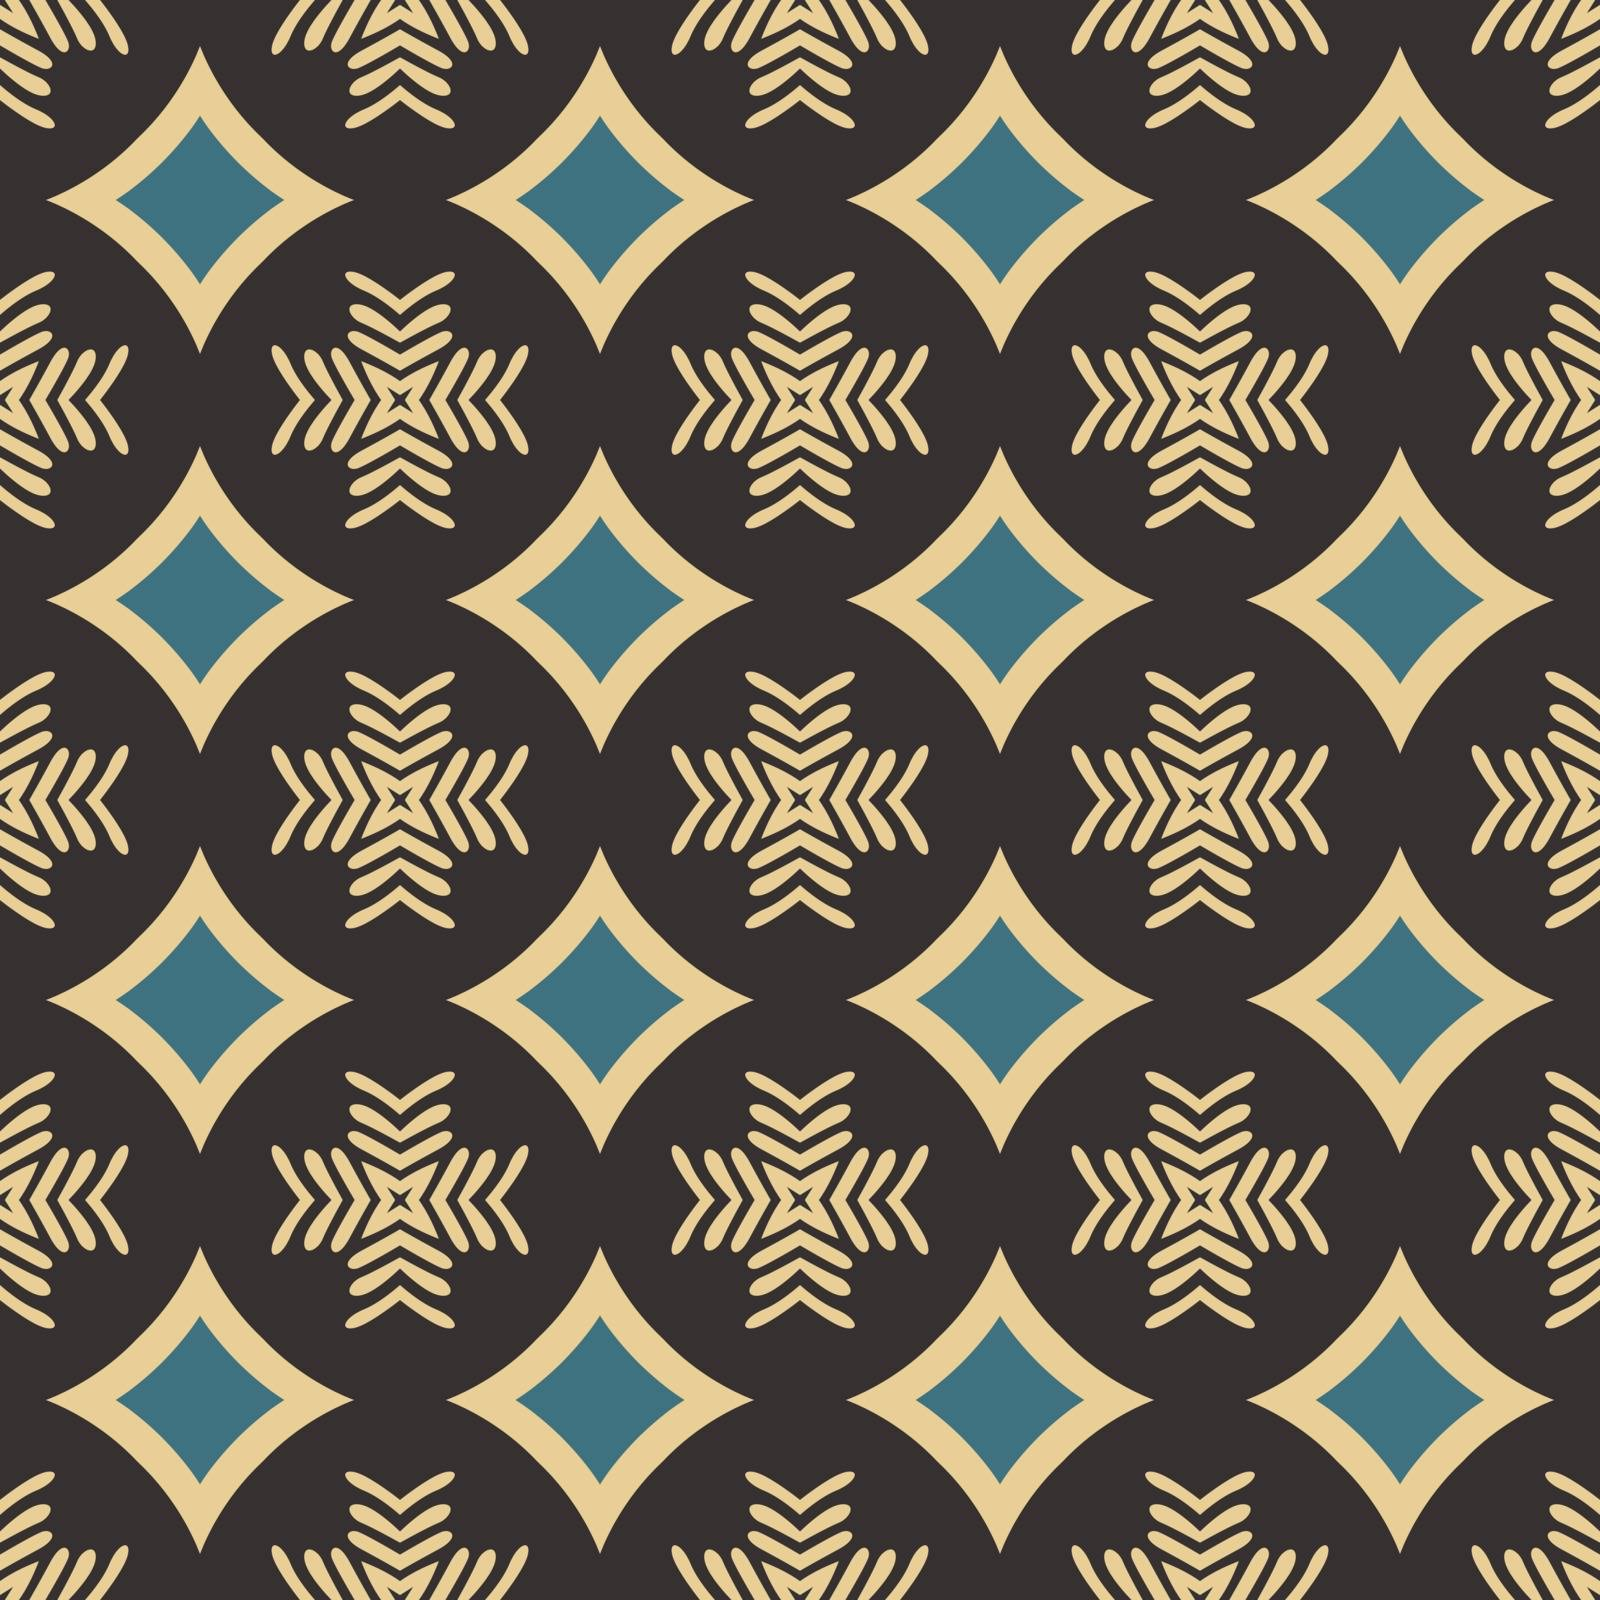 Seamless illustrated pattern made of abstract elements in beige, blue and black